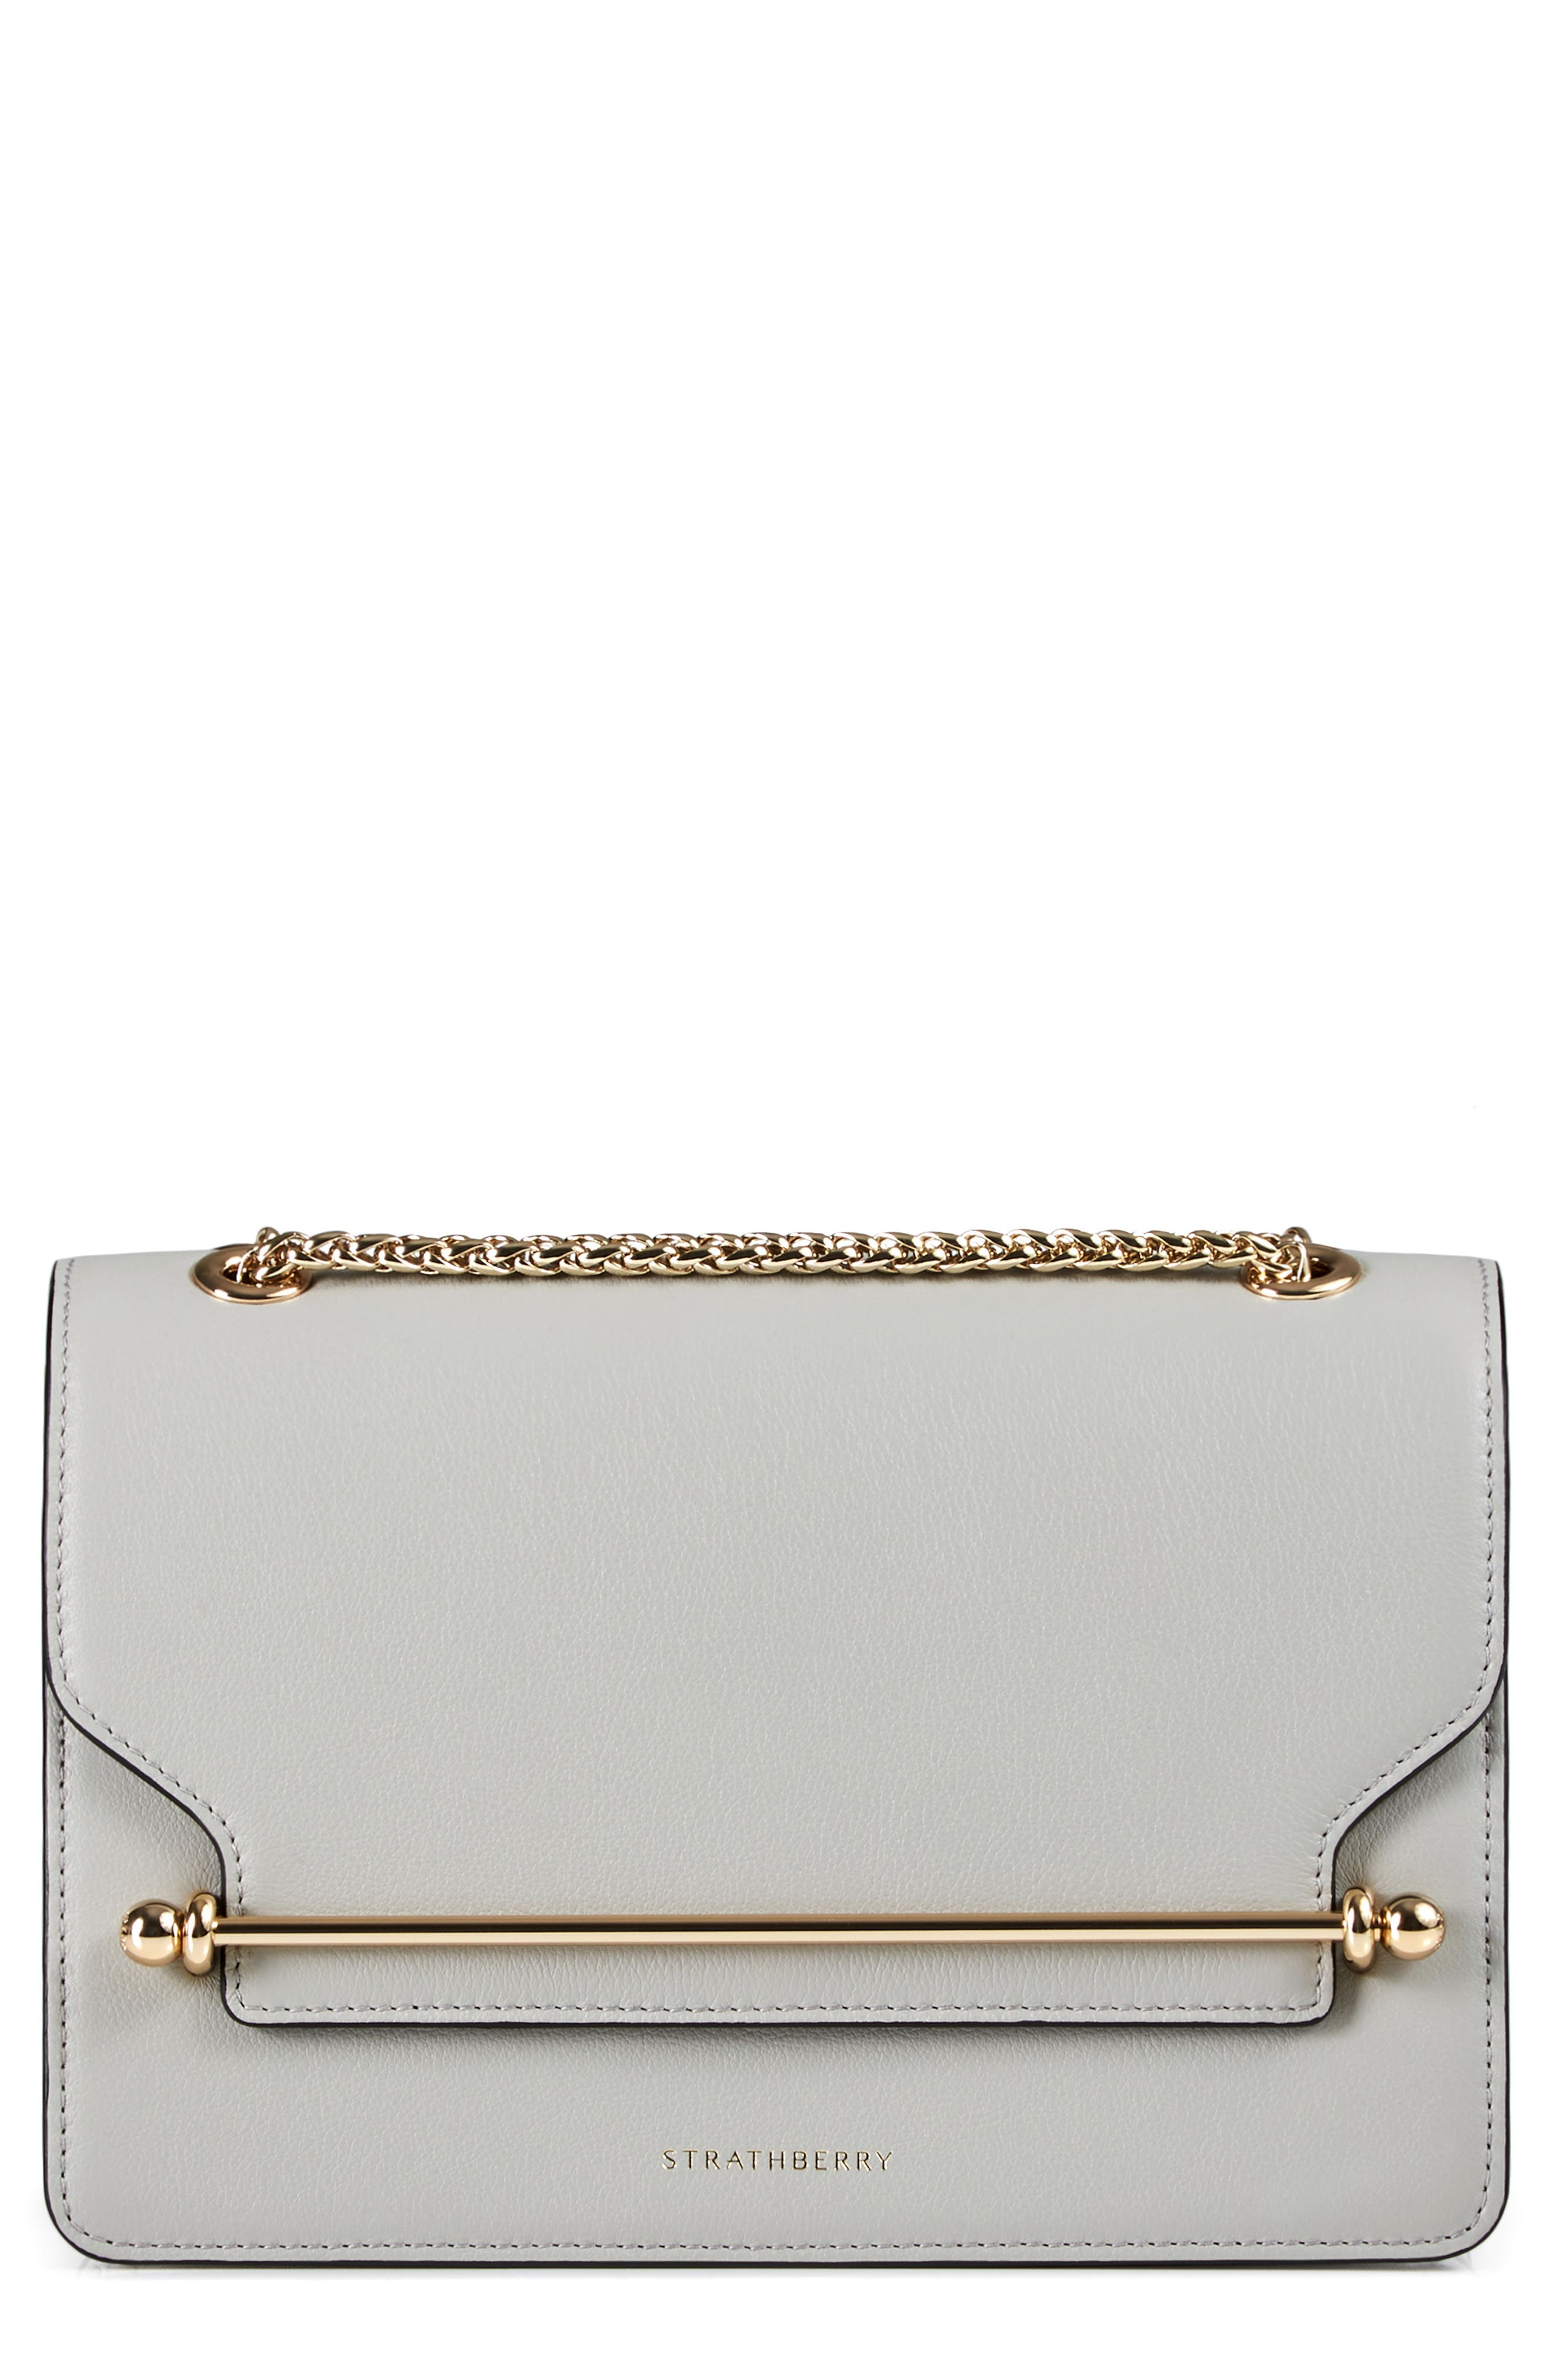 STRATHBERRY East/West Leather Crossbody Bag - Grey